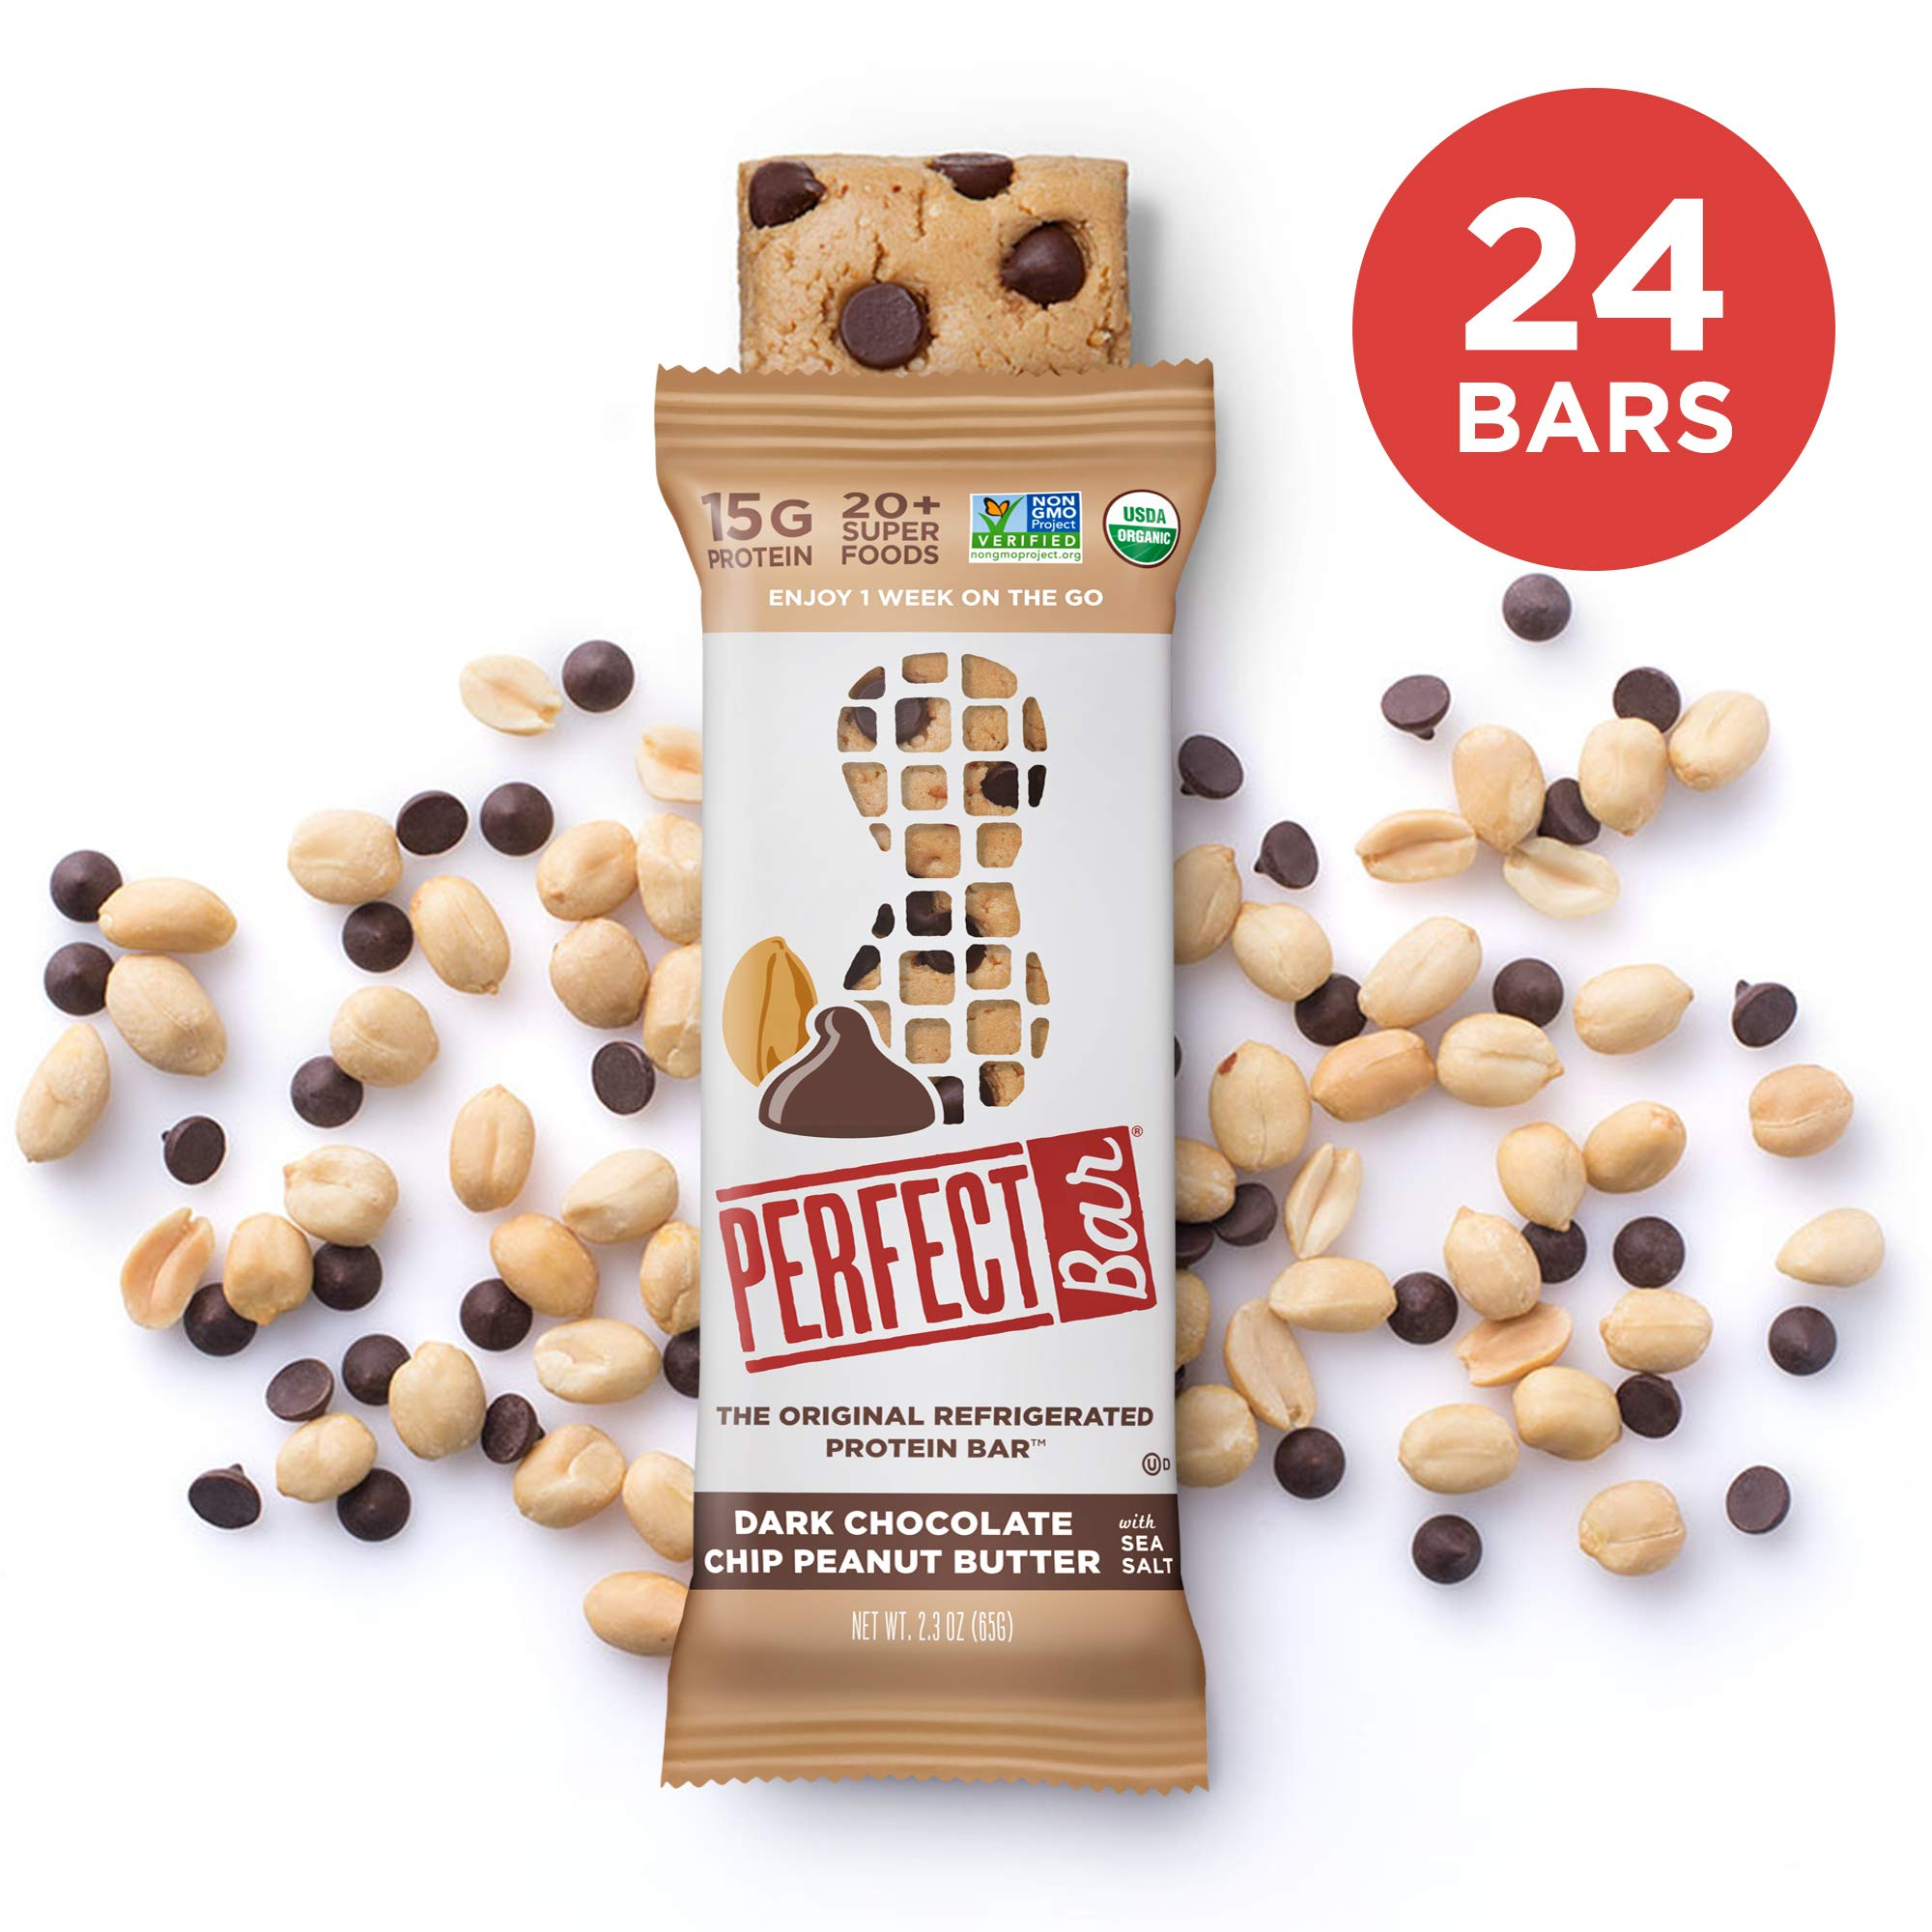 Perfect Bar Original Refrigerated Protein Bar, Dark Chocolate Chip Peanut Butter, 15g Whole Food Protein, Gluten Free, Organic and Non-GMO, 2.3 Oz. Bar (24 Bars)